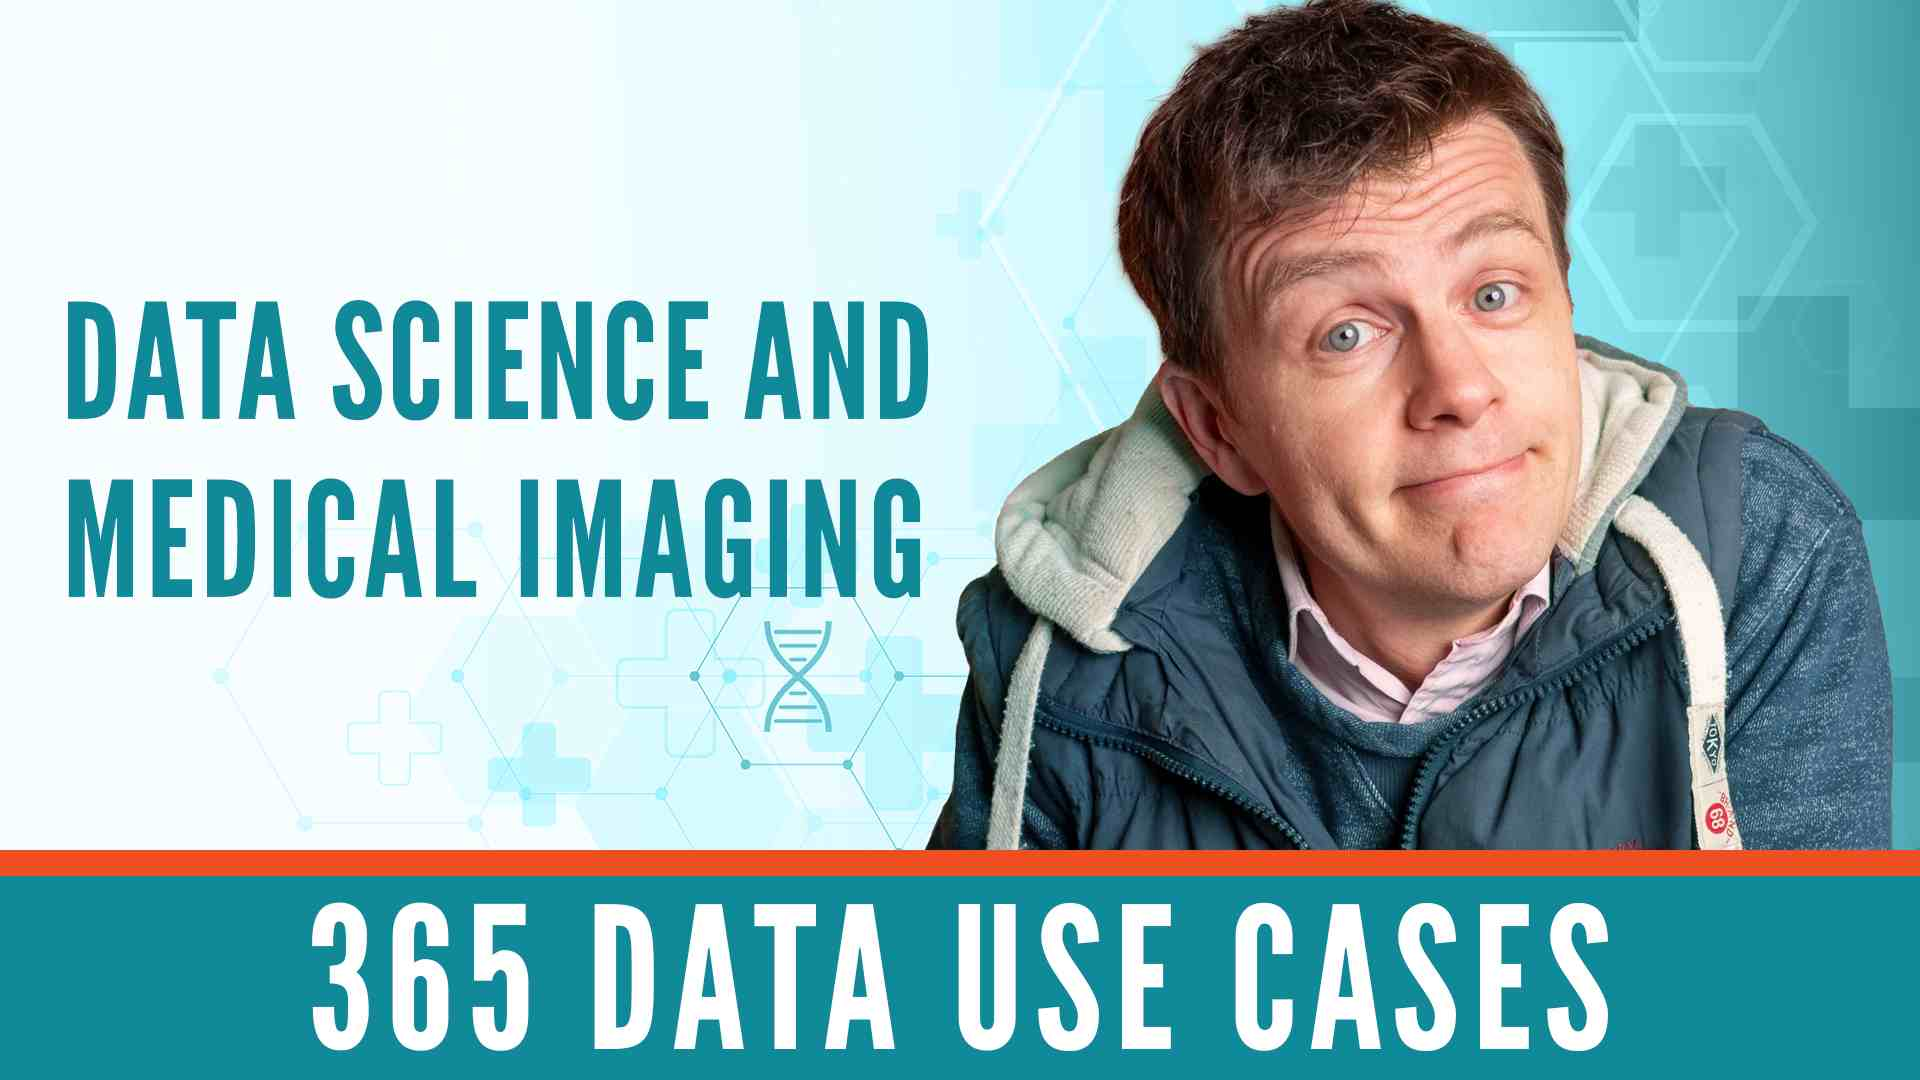 365 Data Use Cases: Data Science and Medical Imaging with Giles McMullen-Klein